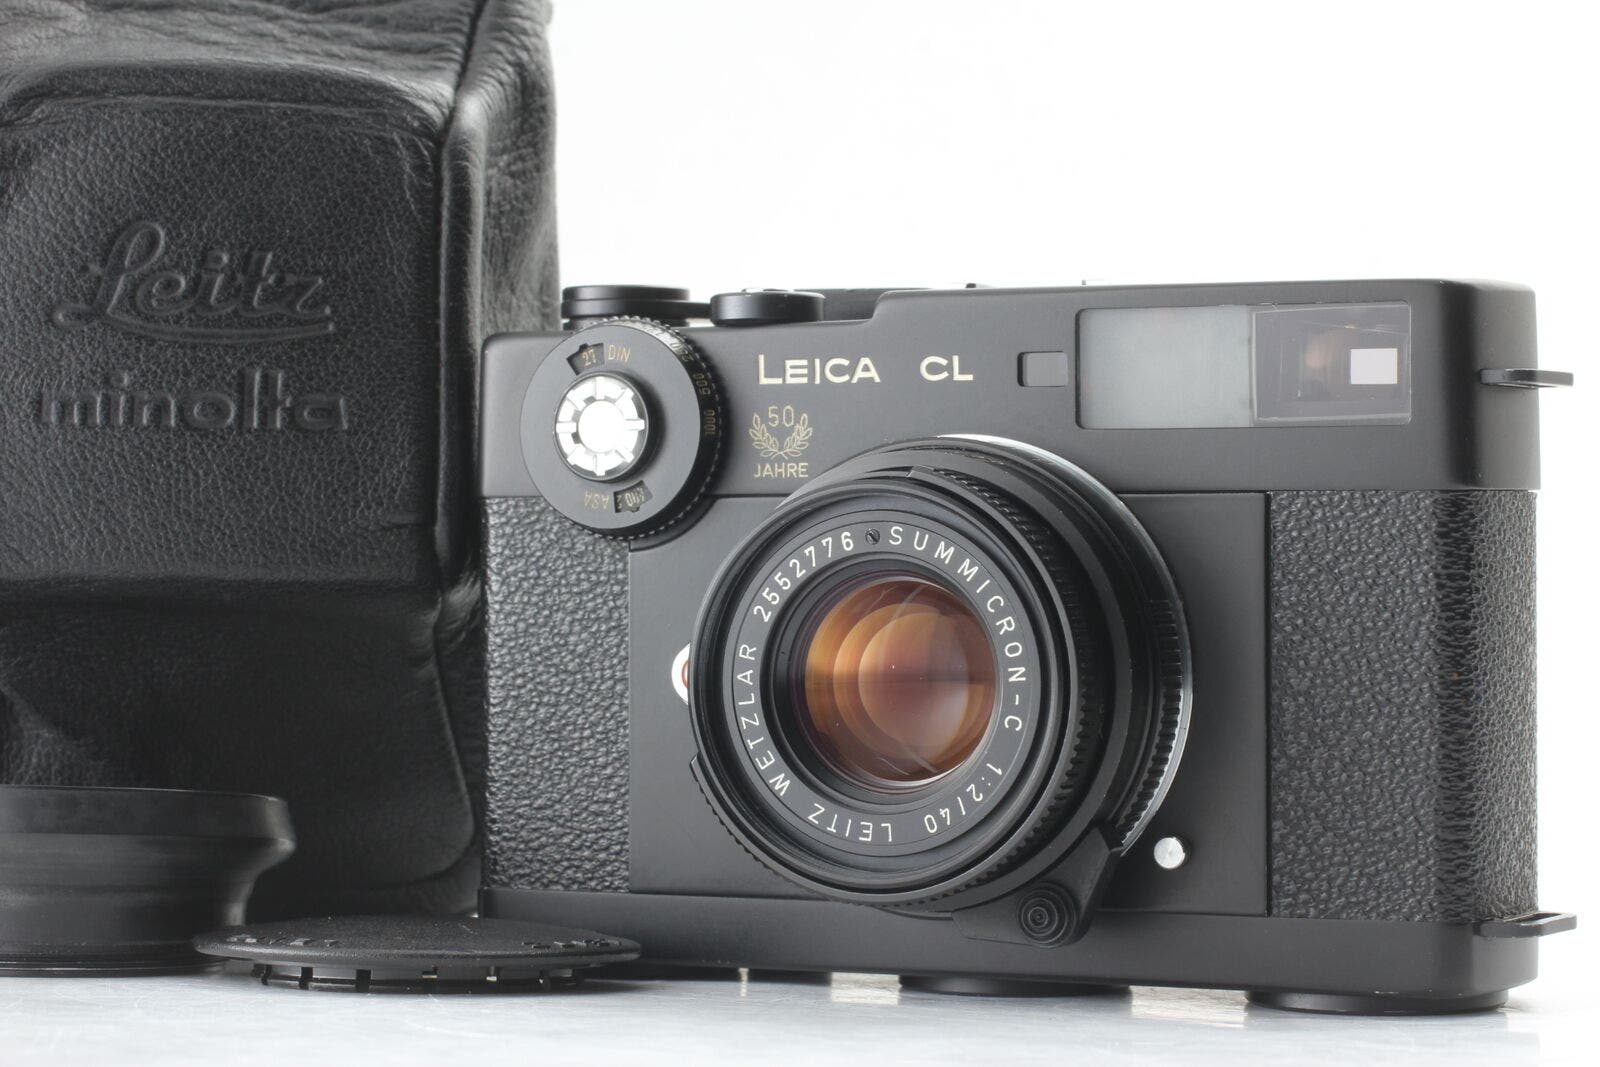 New to Film? The Leica CL Is the Smallest M-mount Camera Ever Made